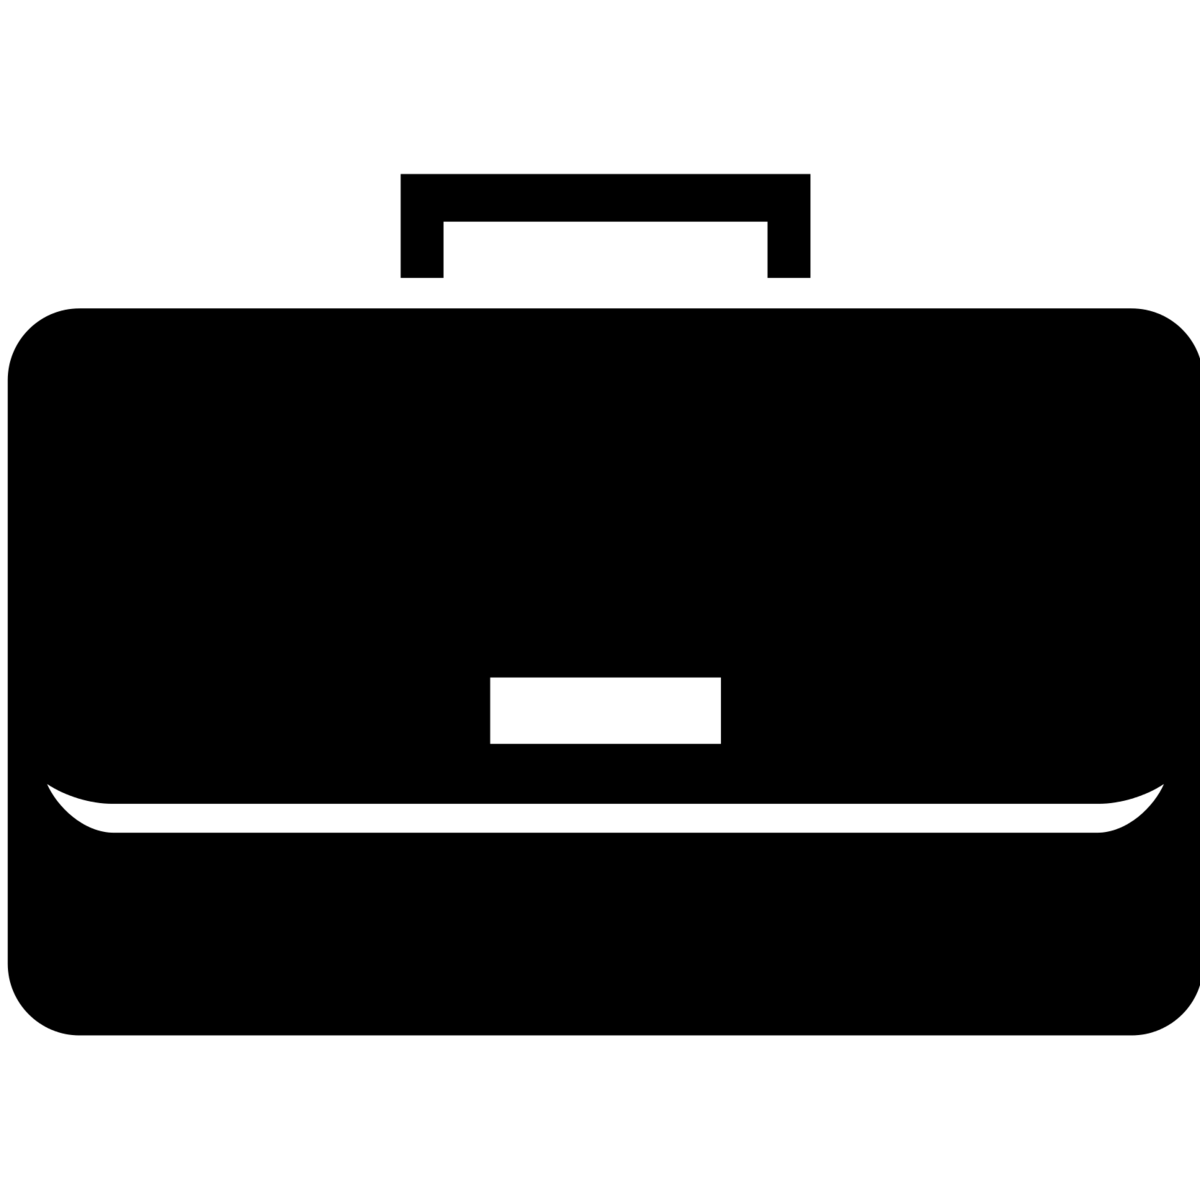 Briefcase clipart man. Lawyer suitcase free on